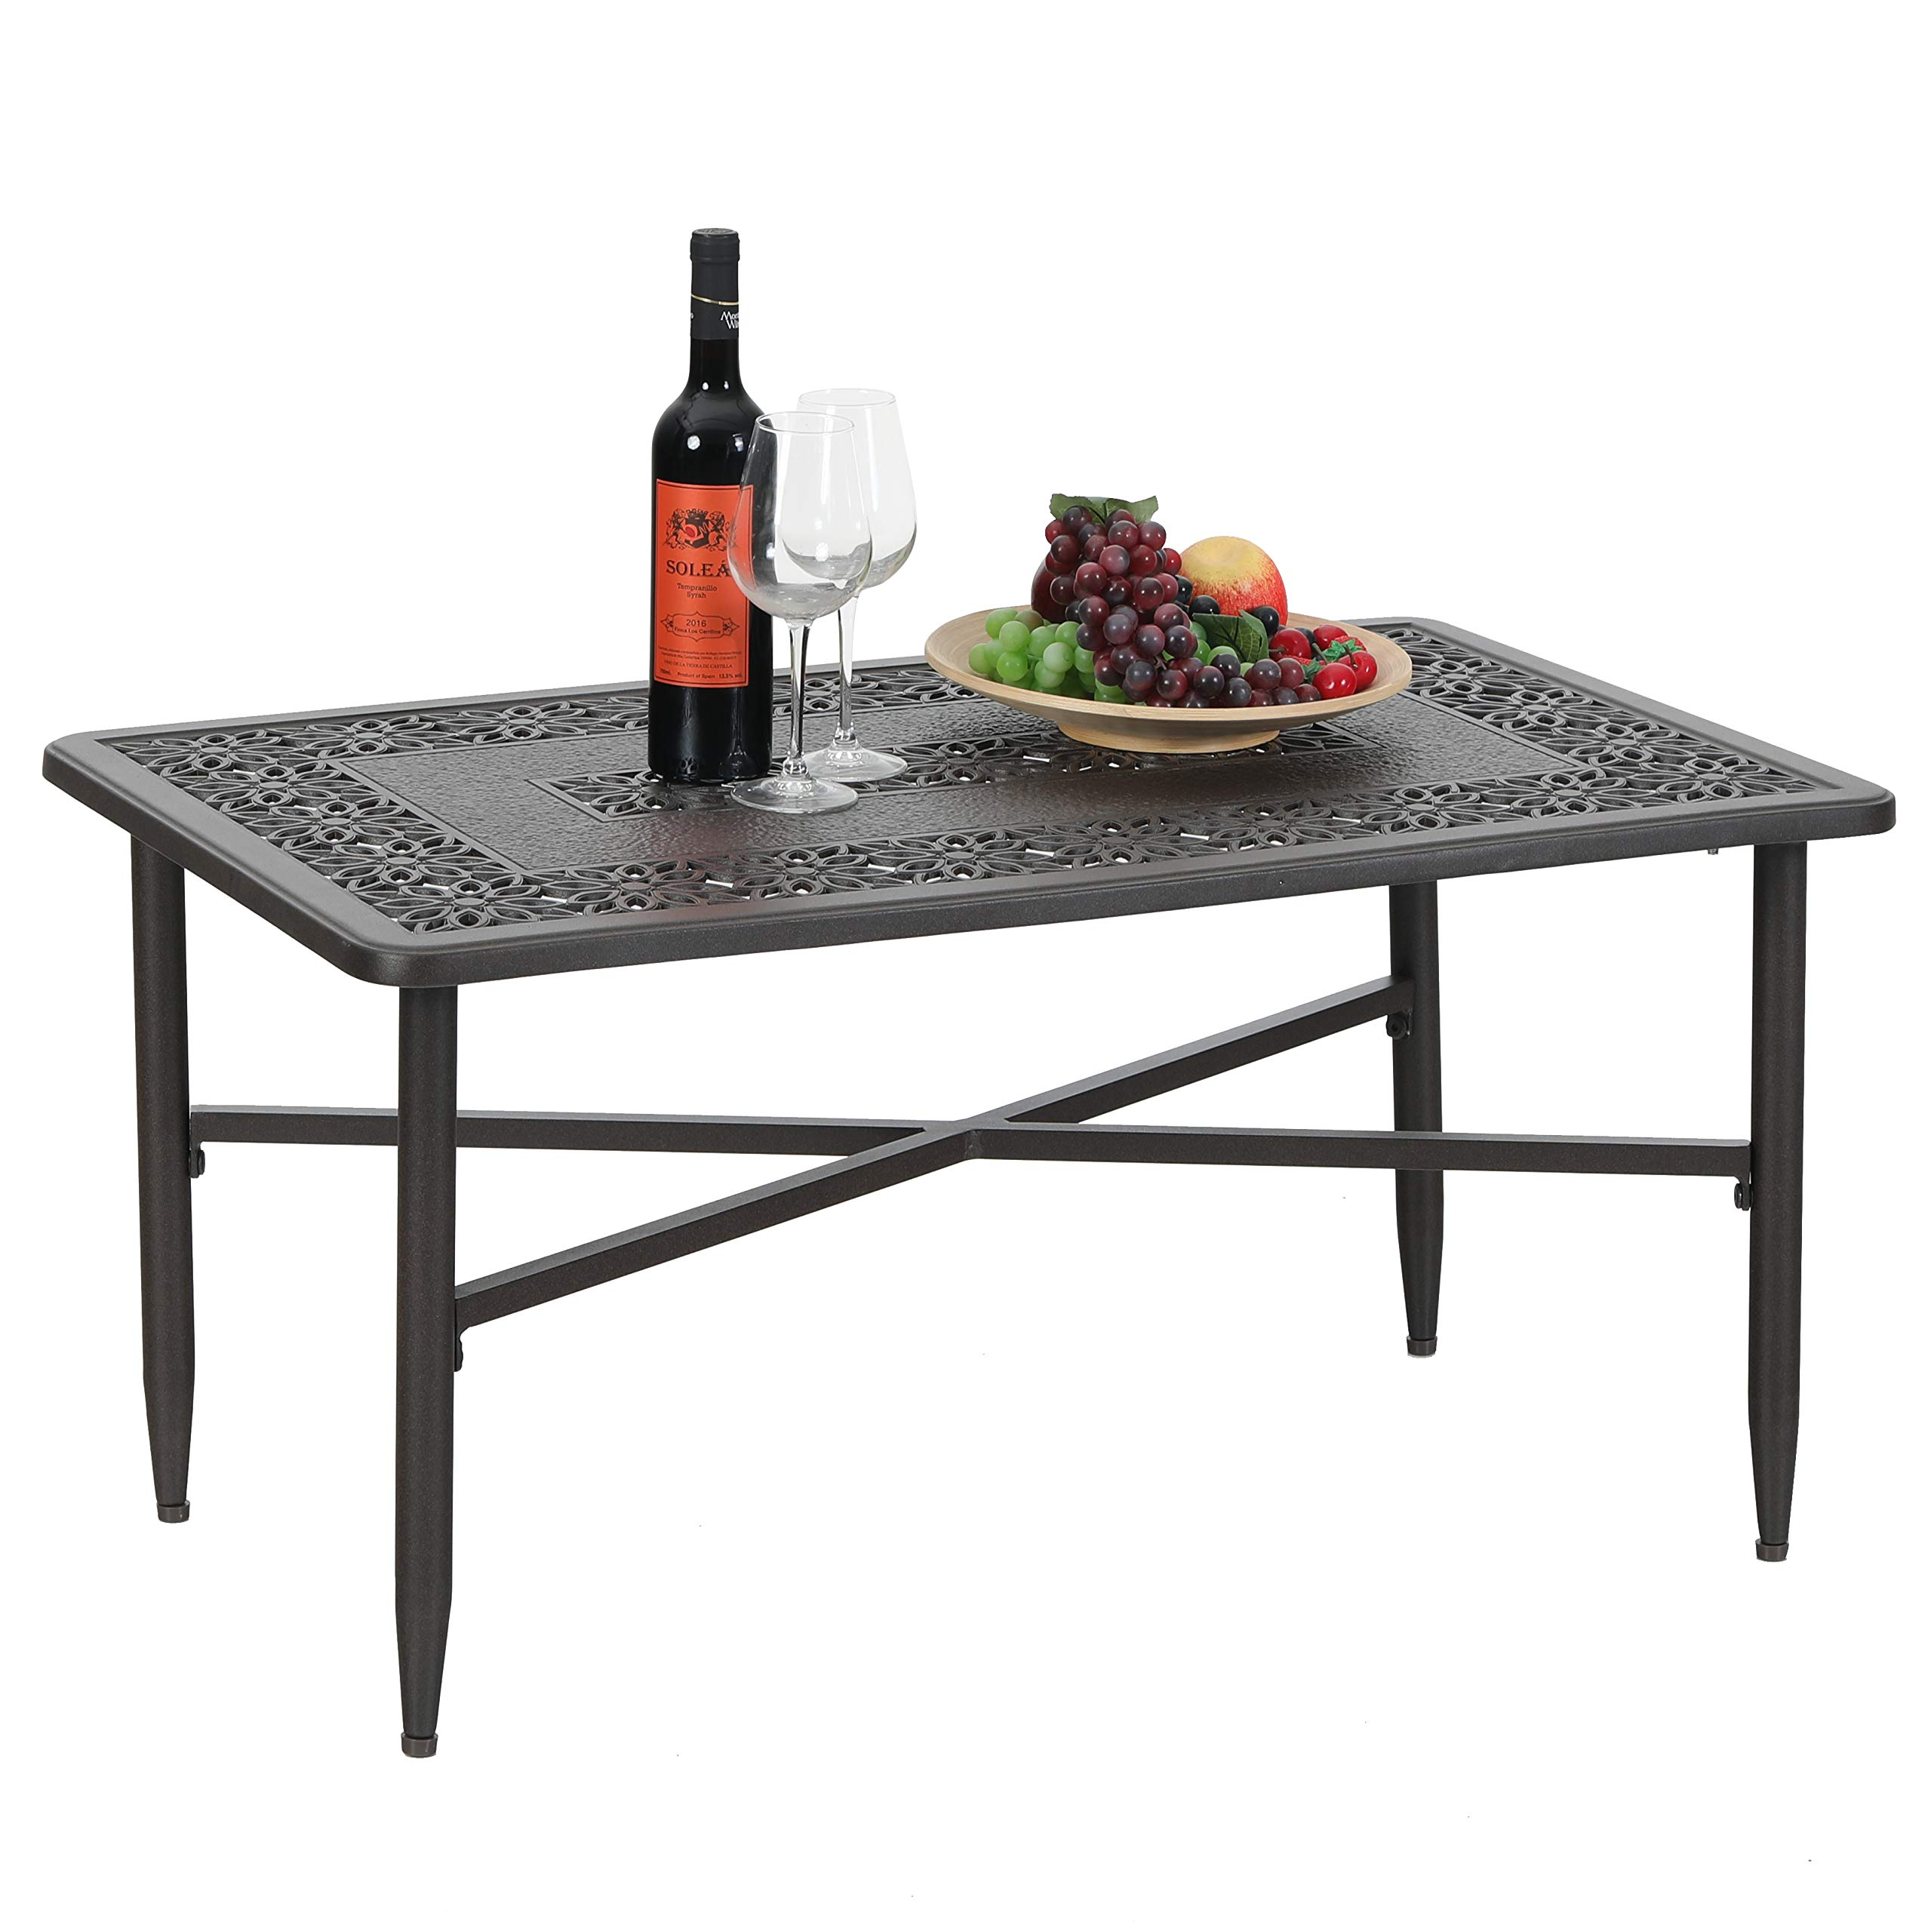 PHI VILLA Outdoor Patio Cast Aluminum 38.6''x23'' Rectangular Coffee Table - Frosted Surface